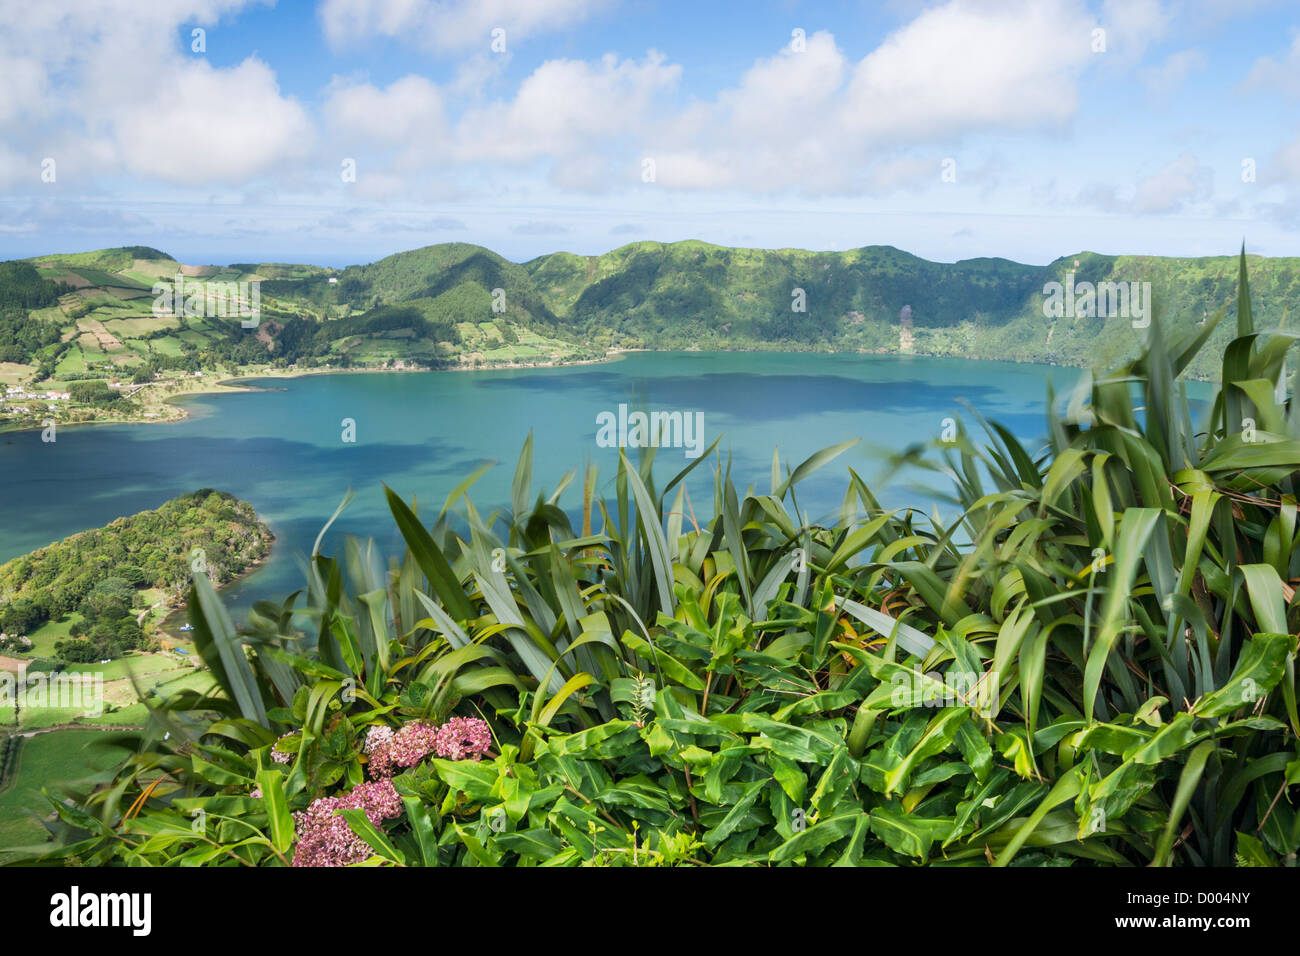 View over Sete Cidades lake on Sao Miguel island in The Azores. Stock Photo